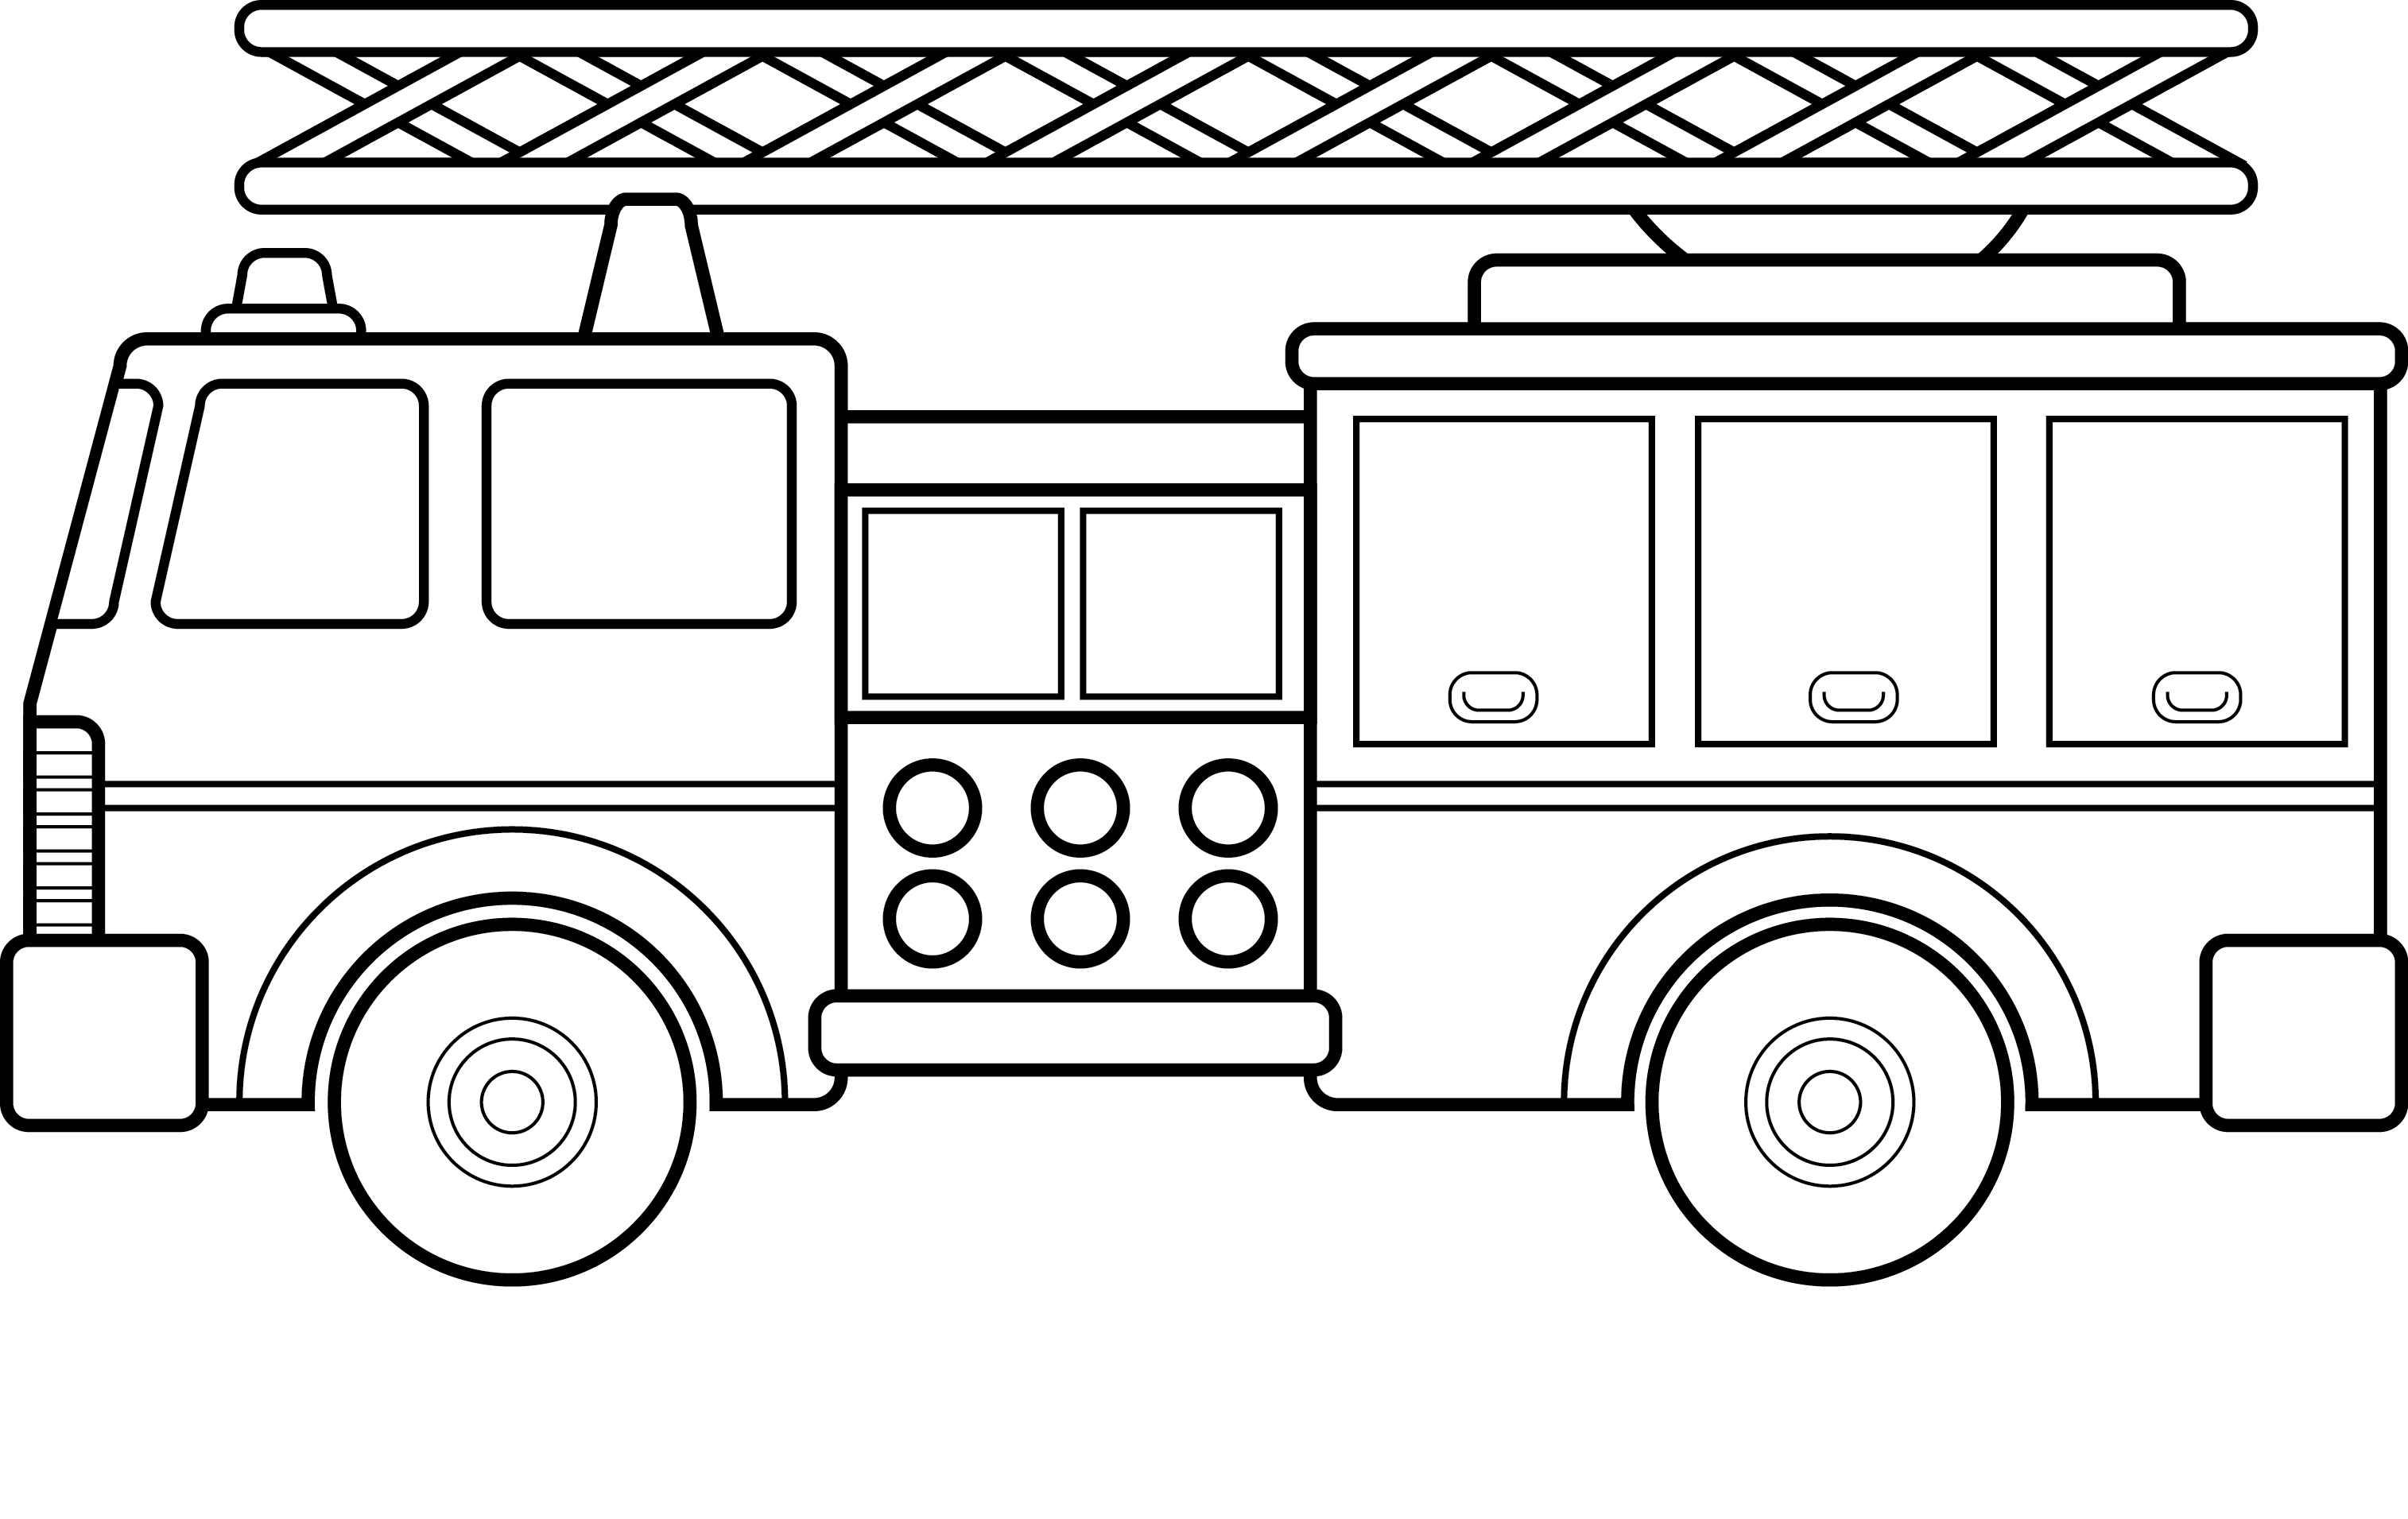 fire truck coloring pages firefighter - photo#16